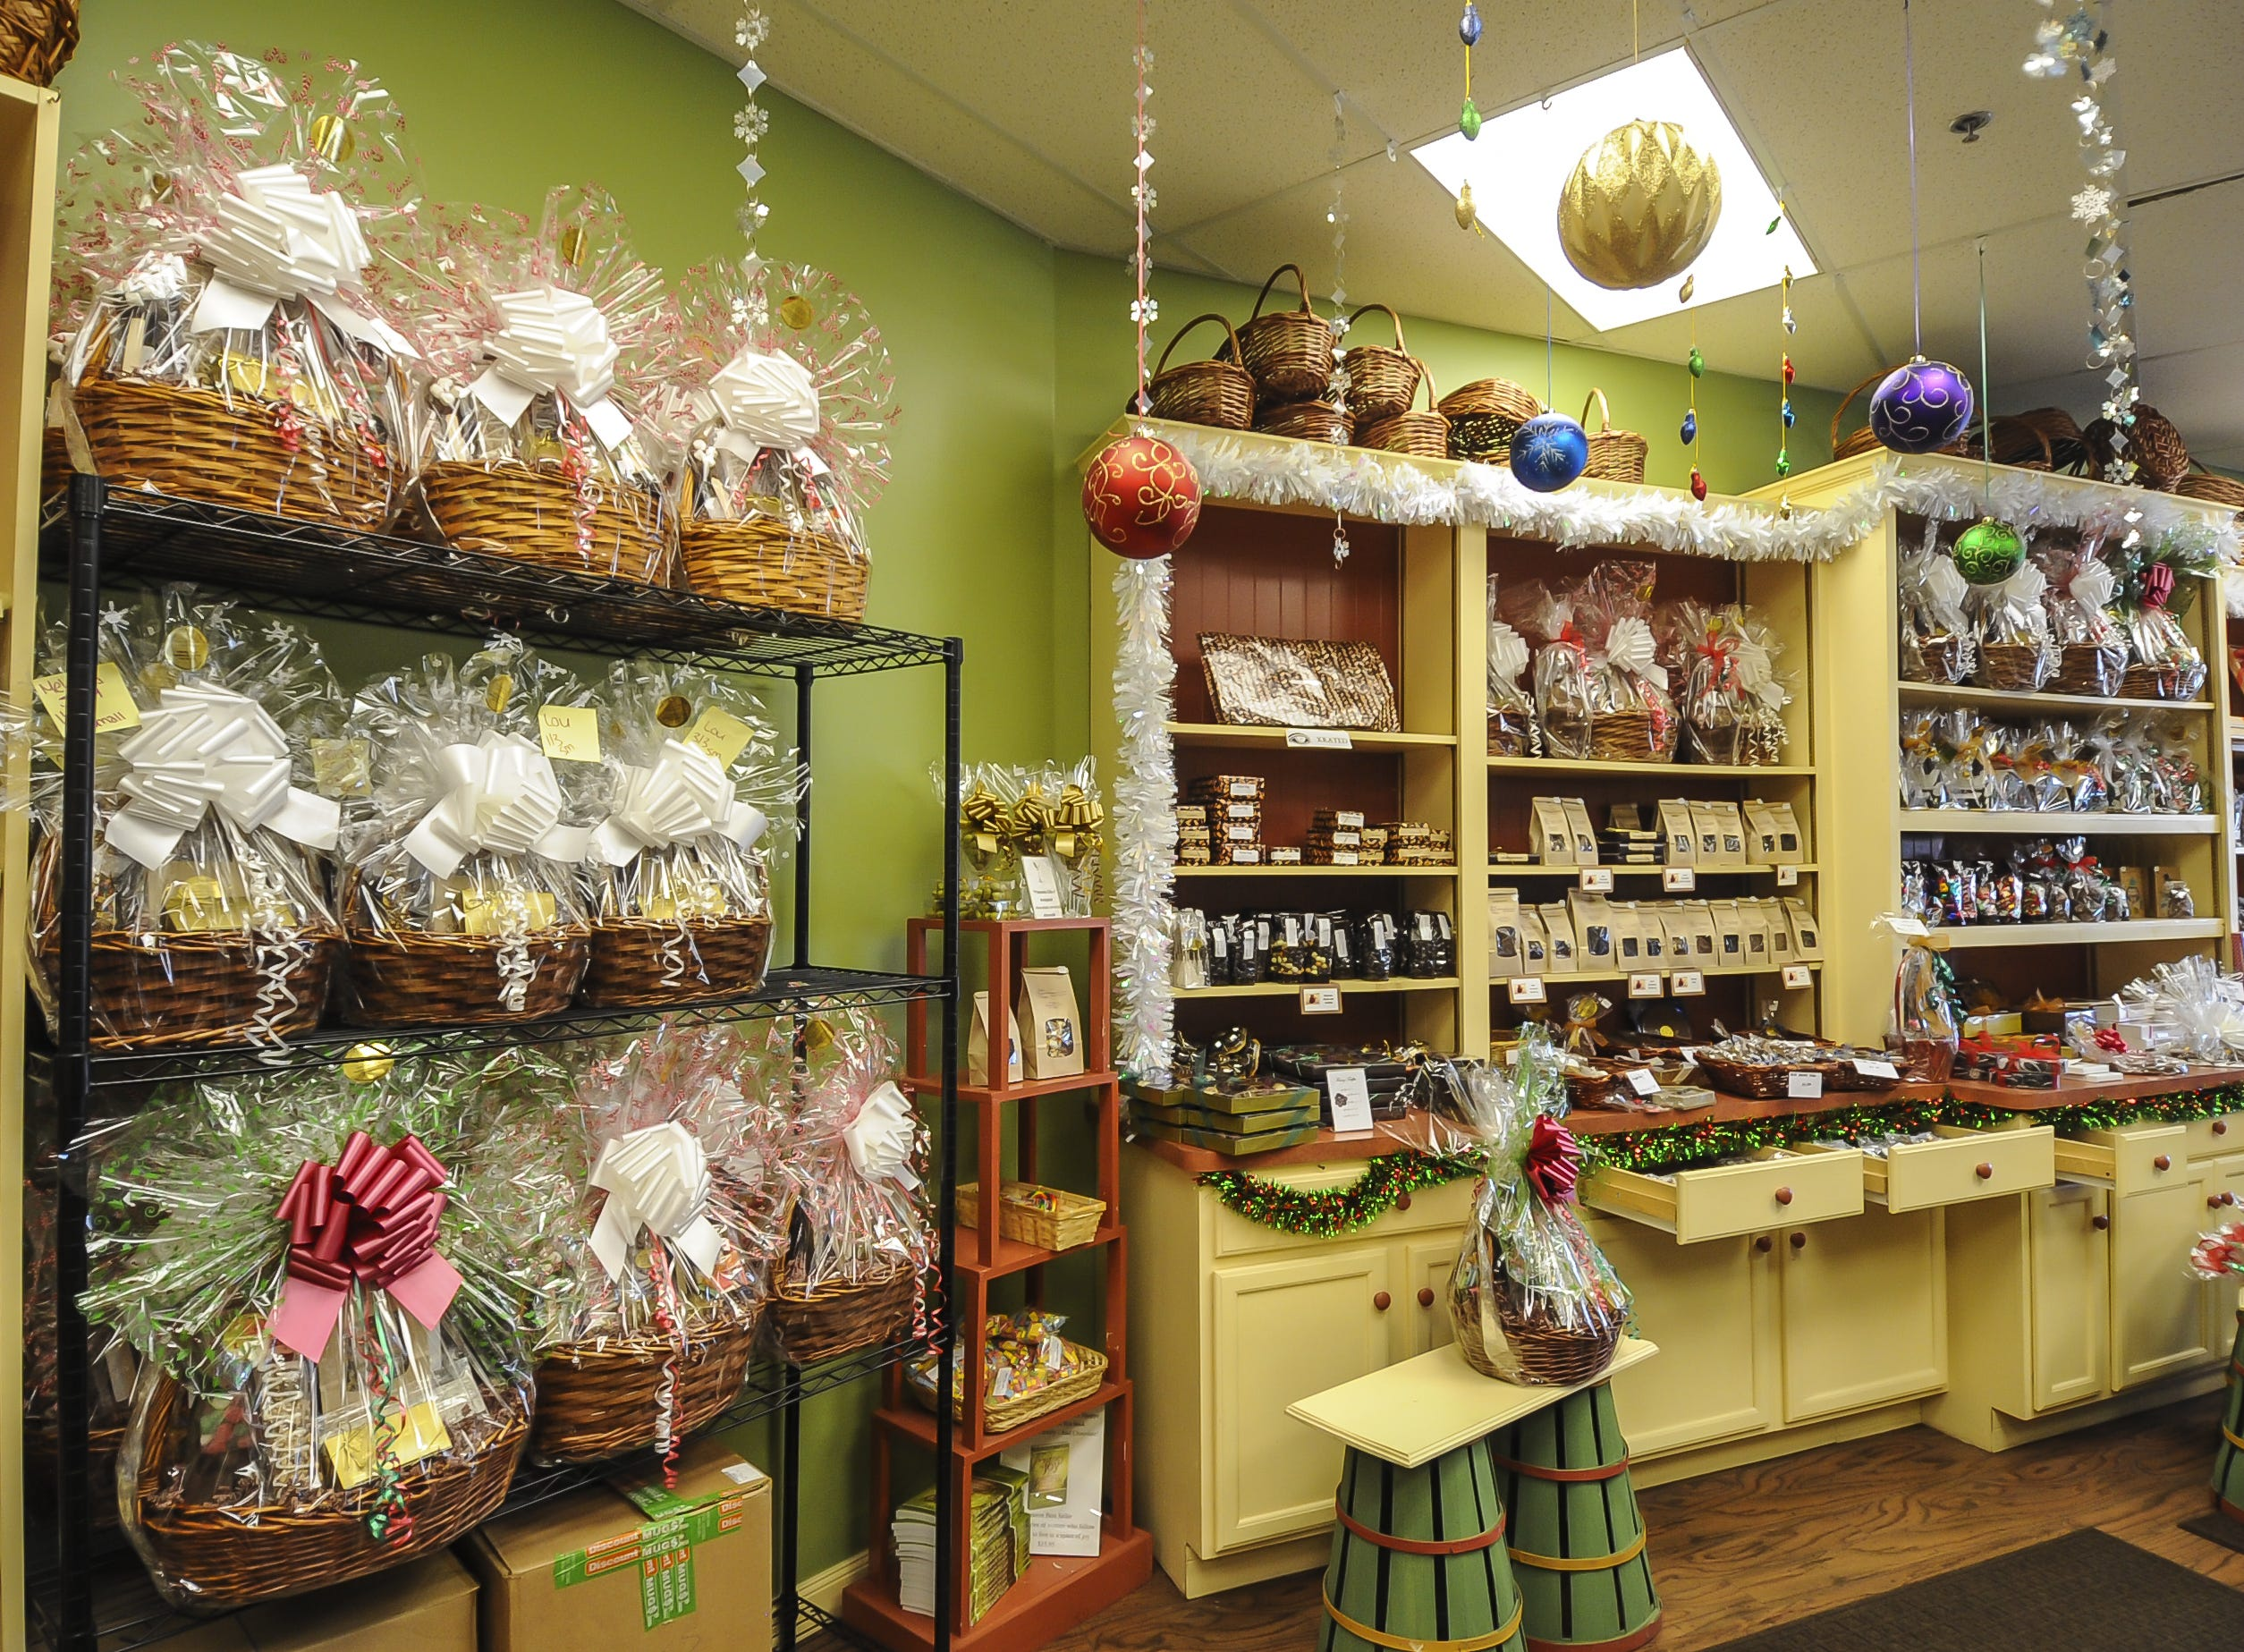 Suzi's Sweet Shoppe, a Middletown family-owned business. The family-owned business offers hand-dipped chocolates, gift baskets, party favors, and homemade fudge.